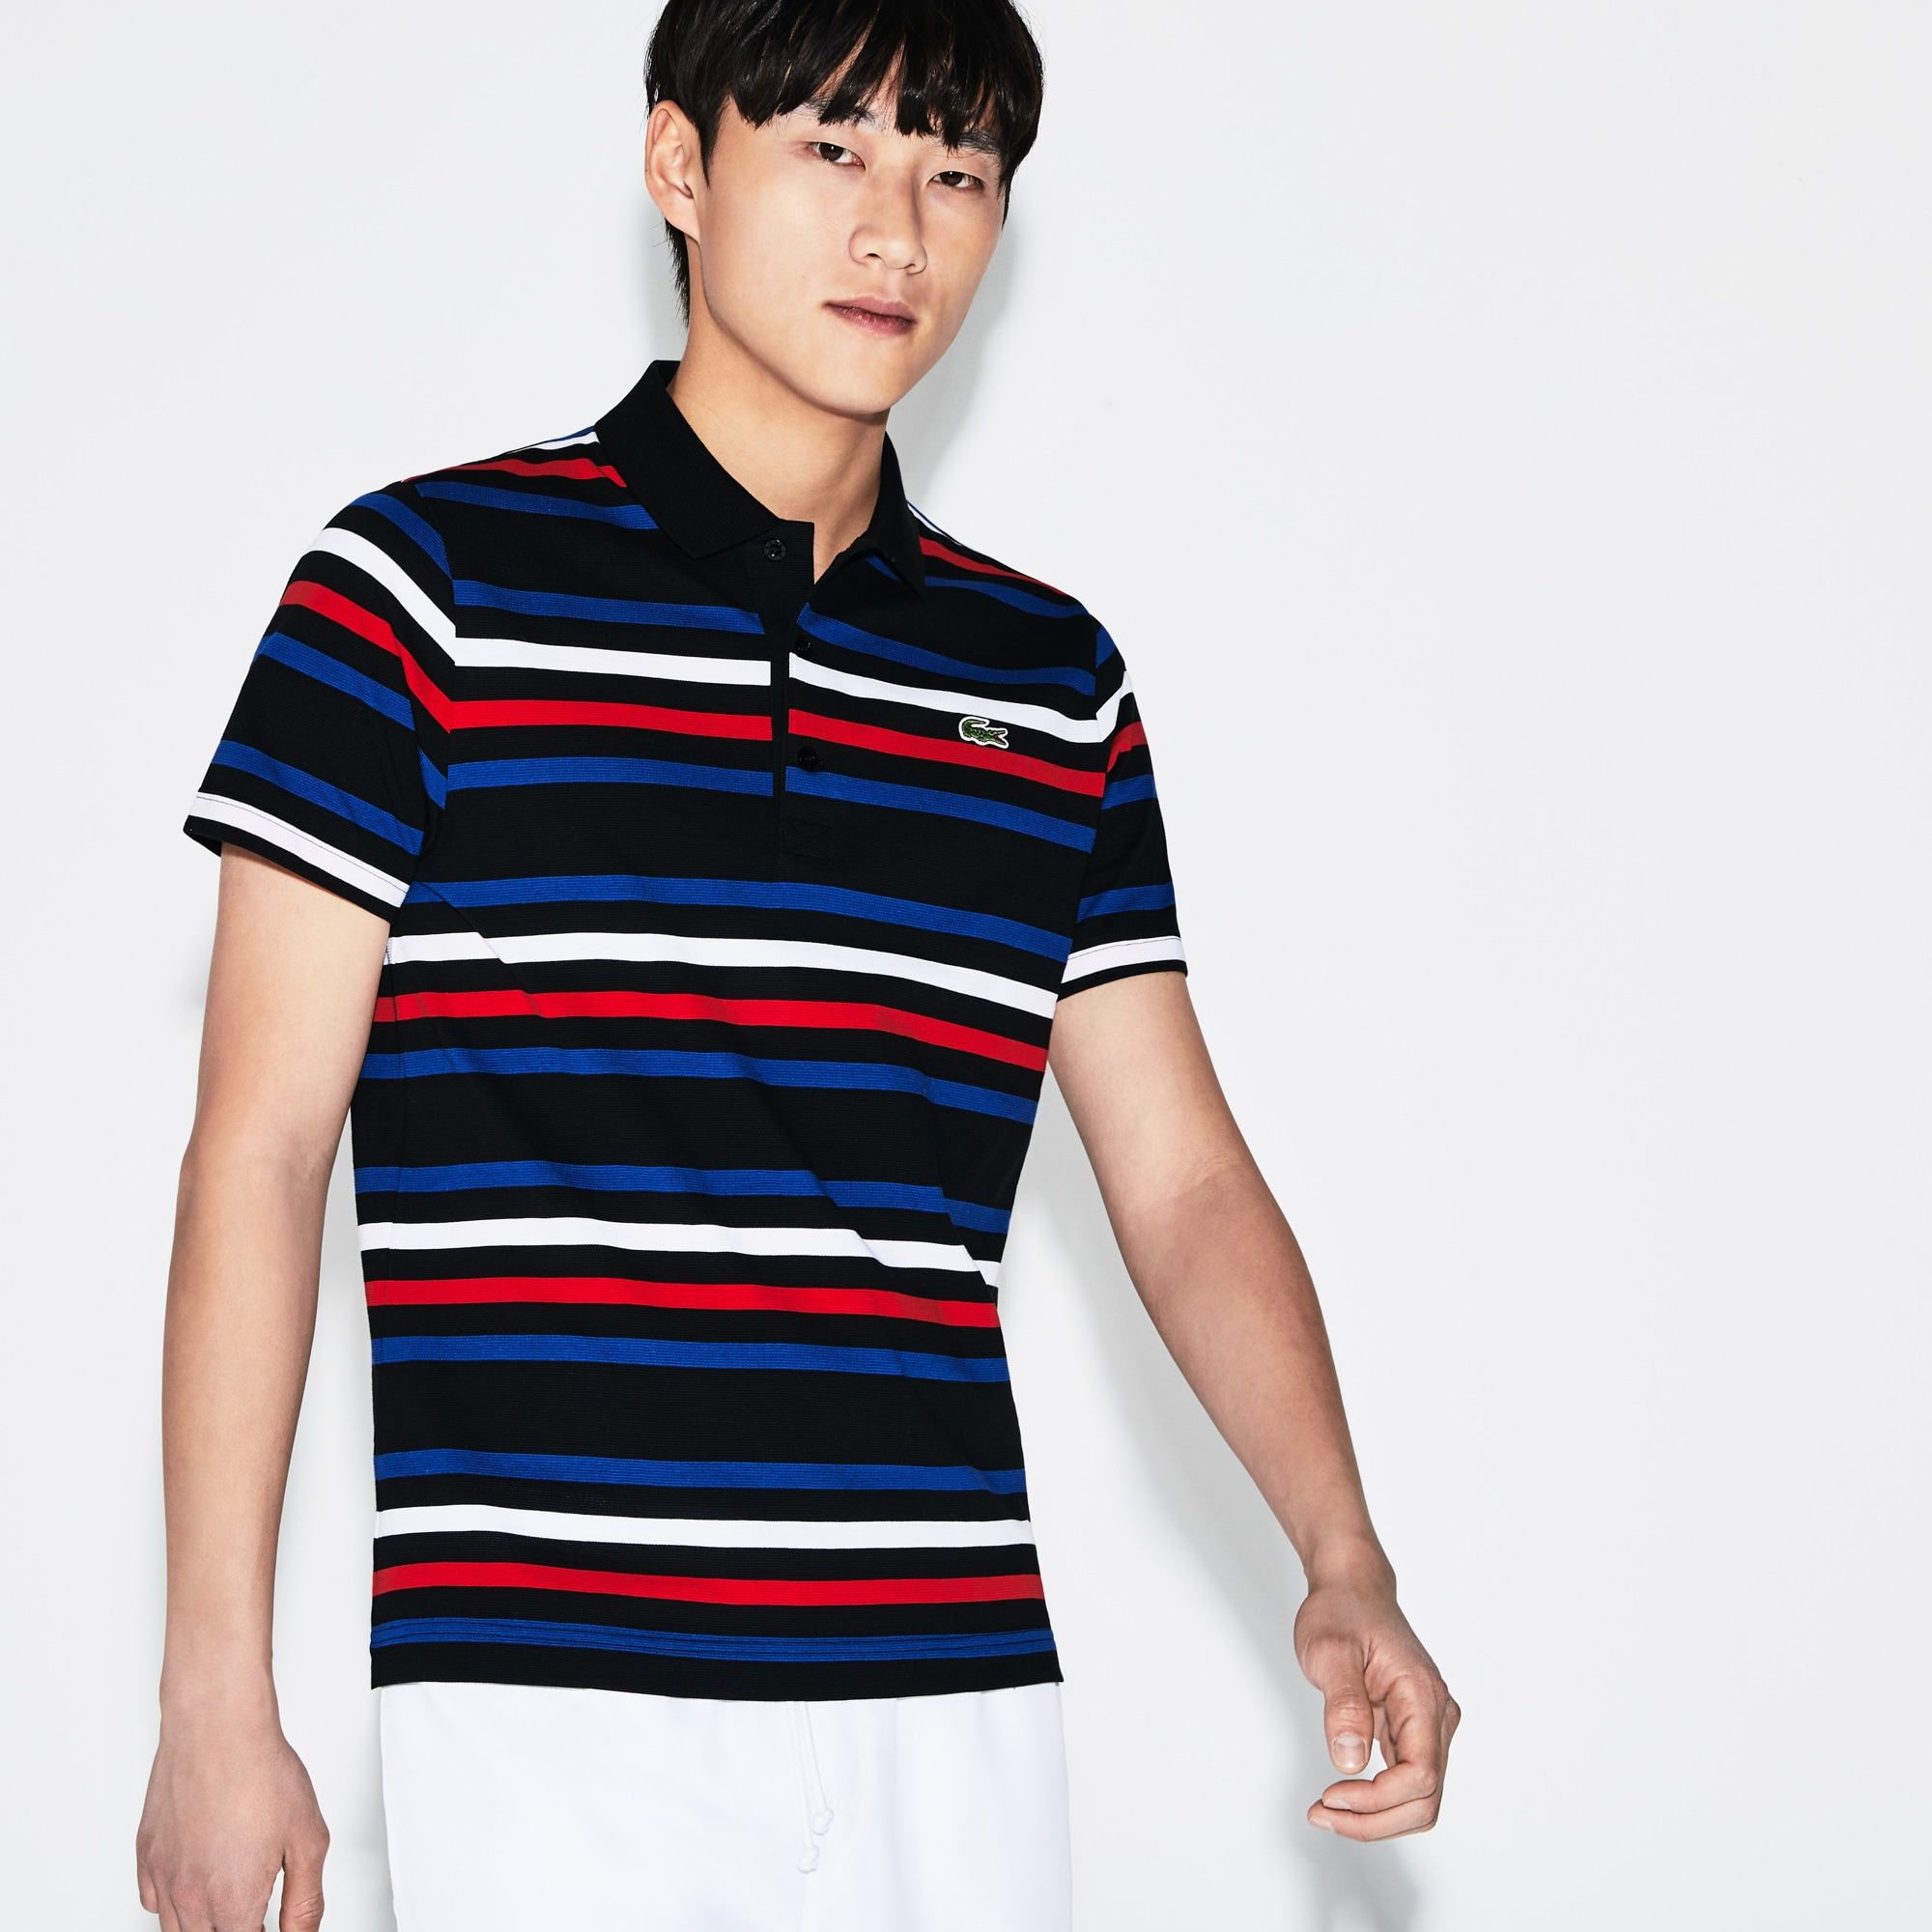 Men's SPORT Striped Ultra-Light Cotton Tennis Polo